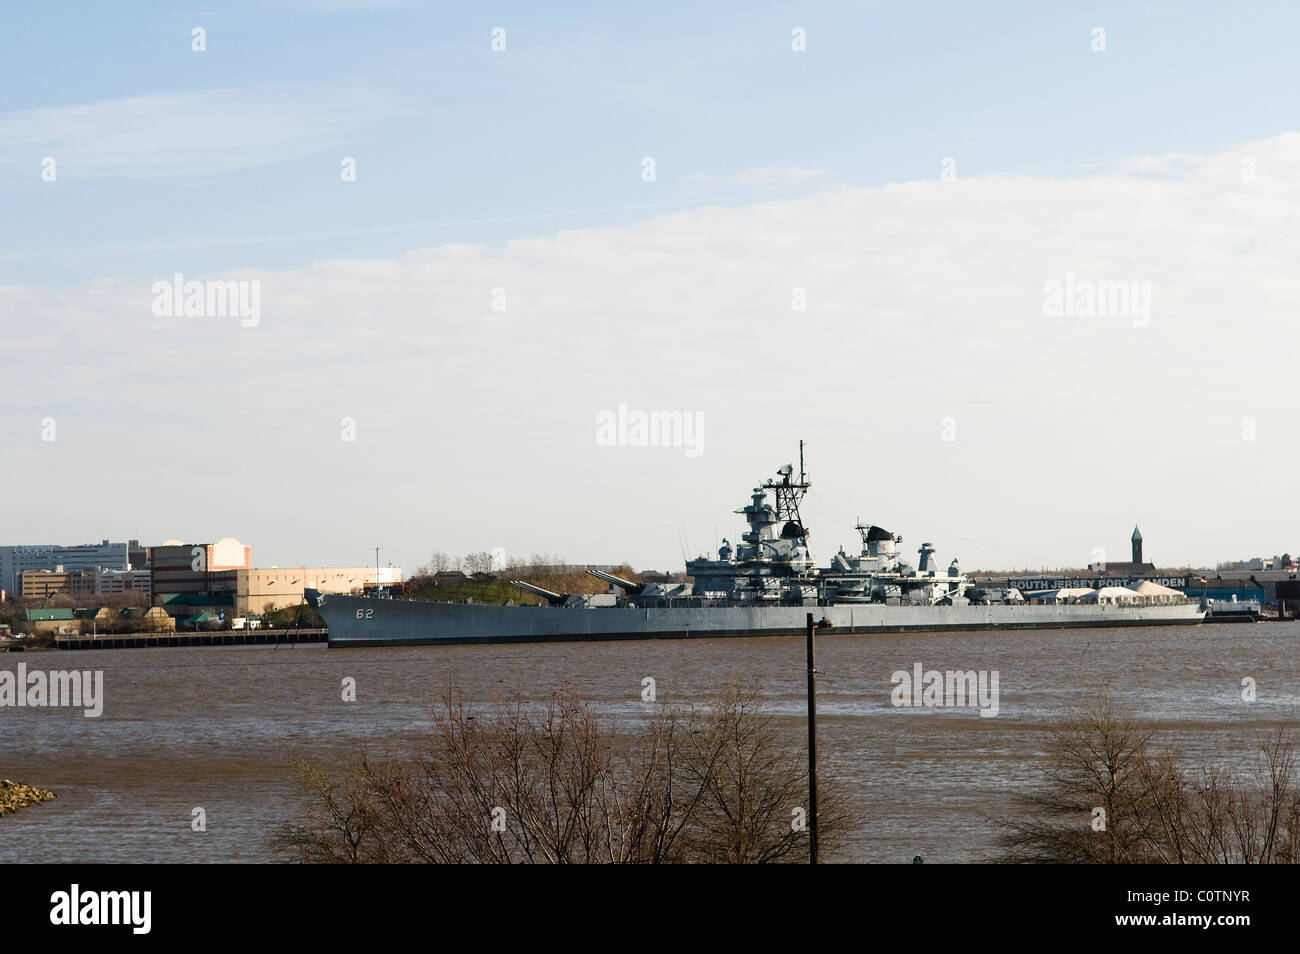 A US Navy ship on the Delaware river. - Stock Image